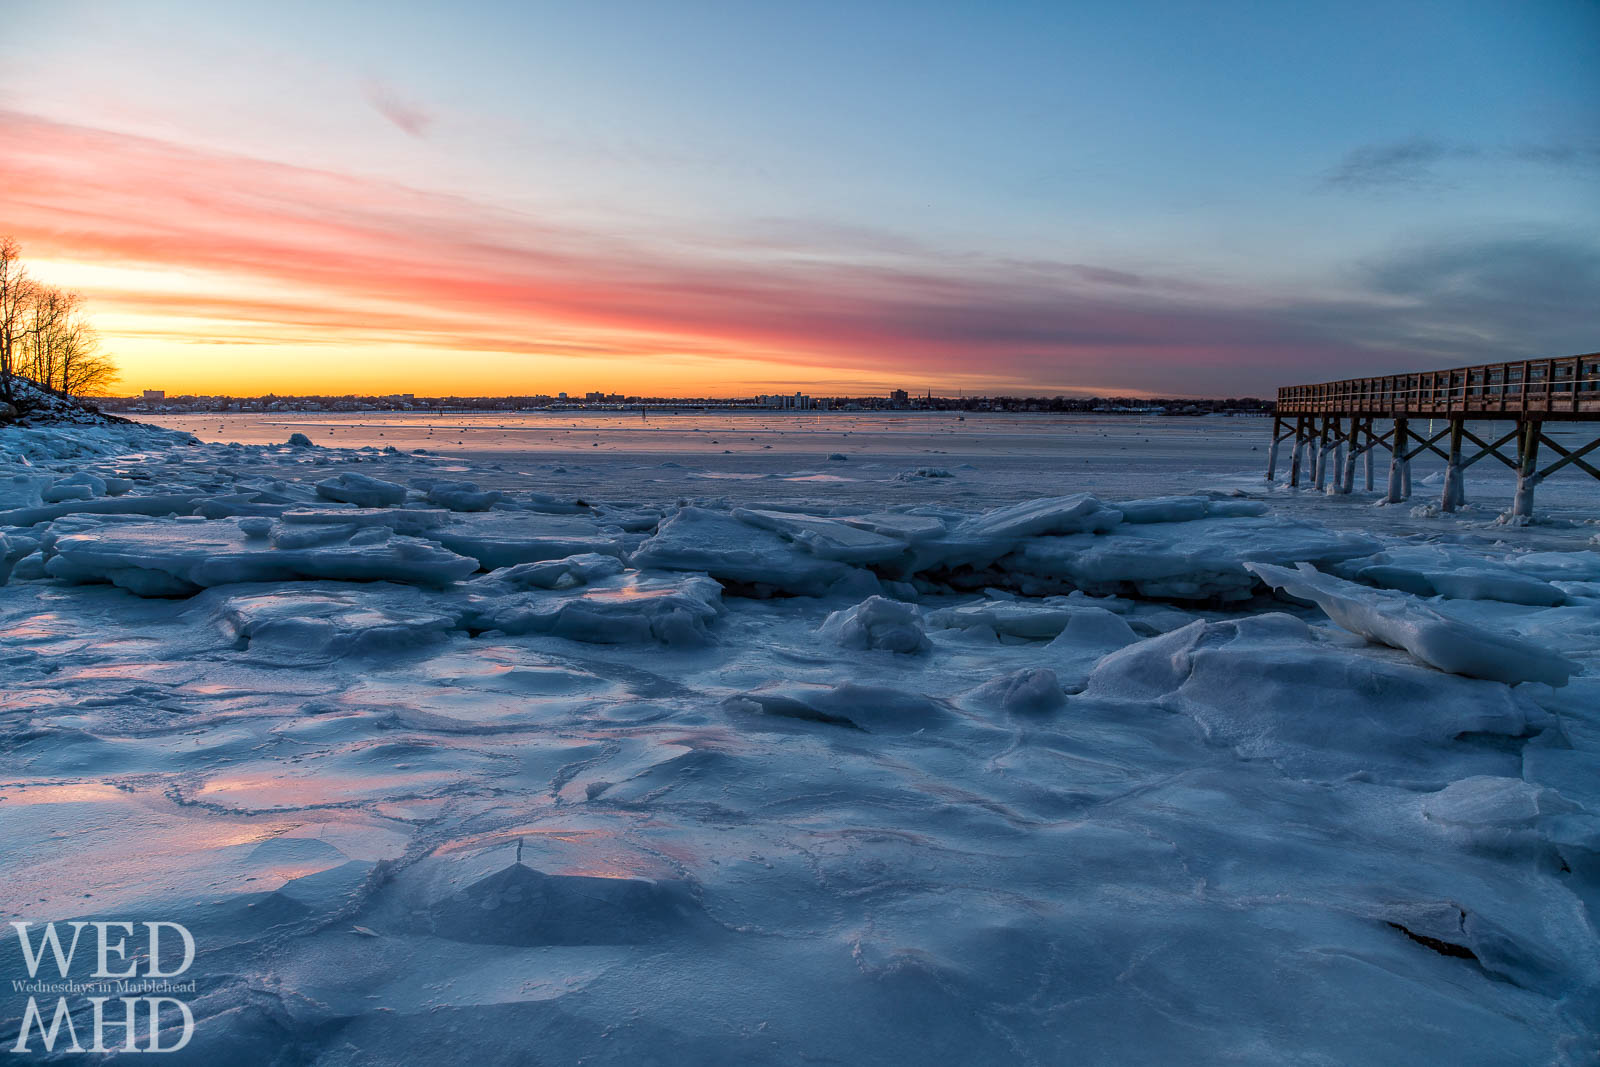 Pancake ice forms at Stramski Beach during a long spell of arctic conditions. The ice perfectly reflects the light of sunset.